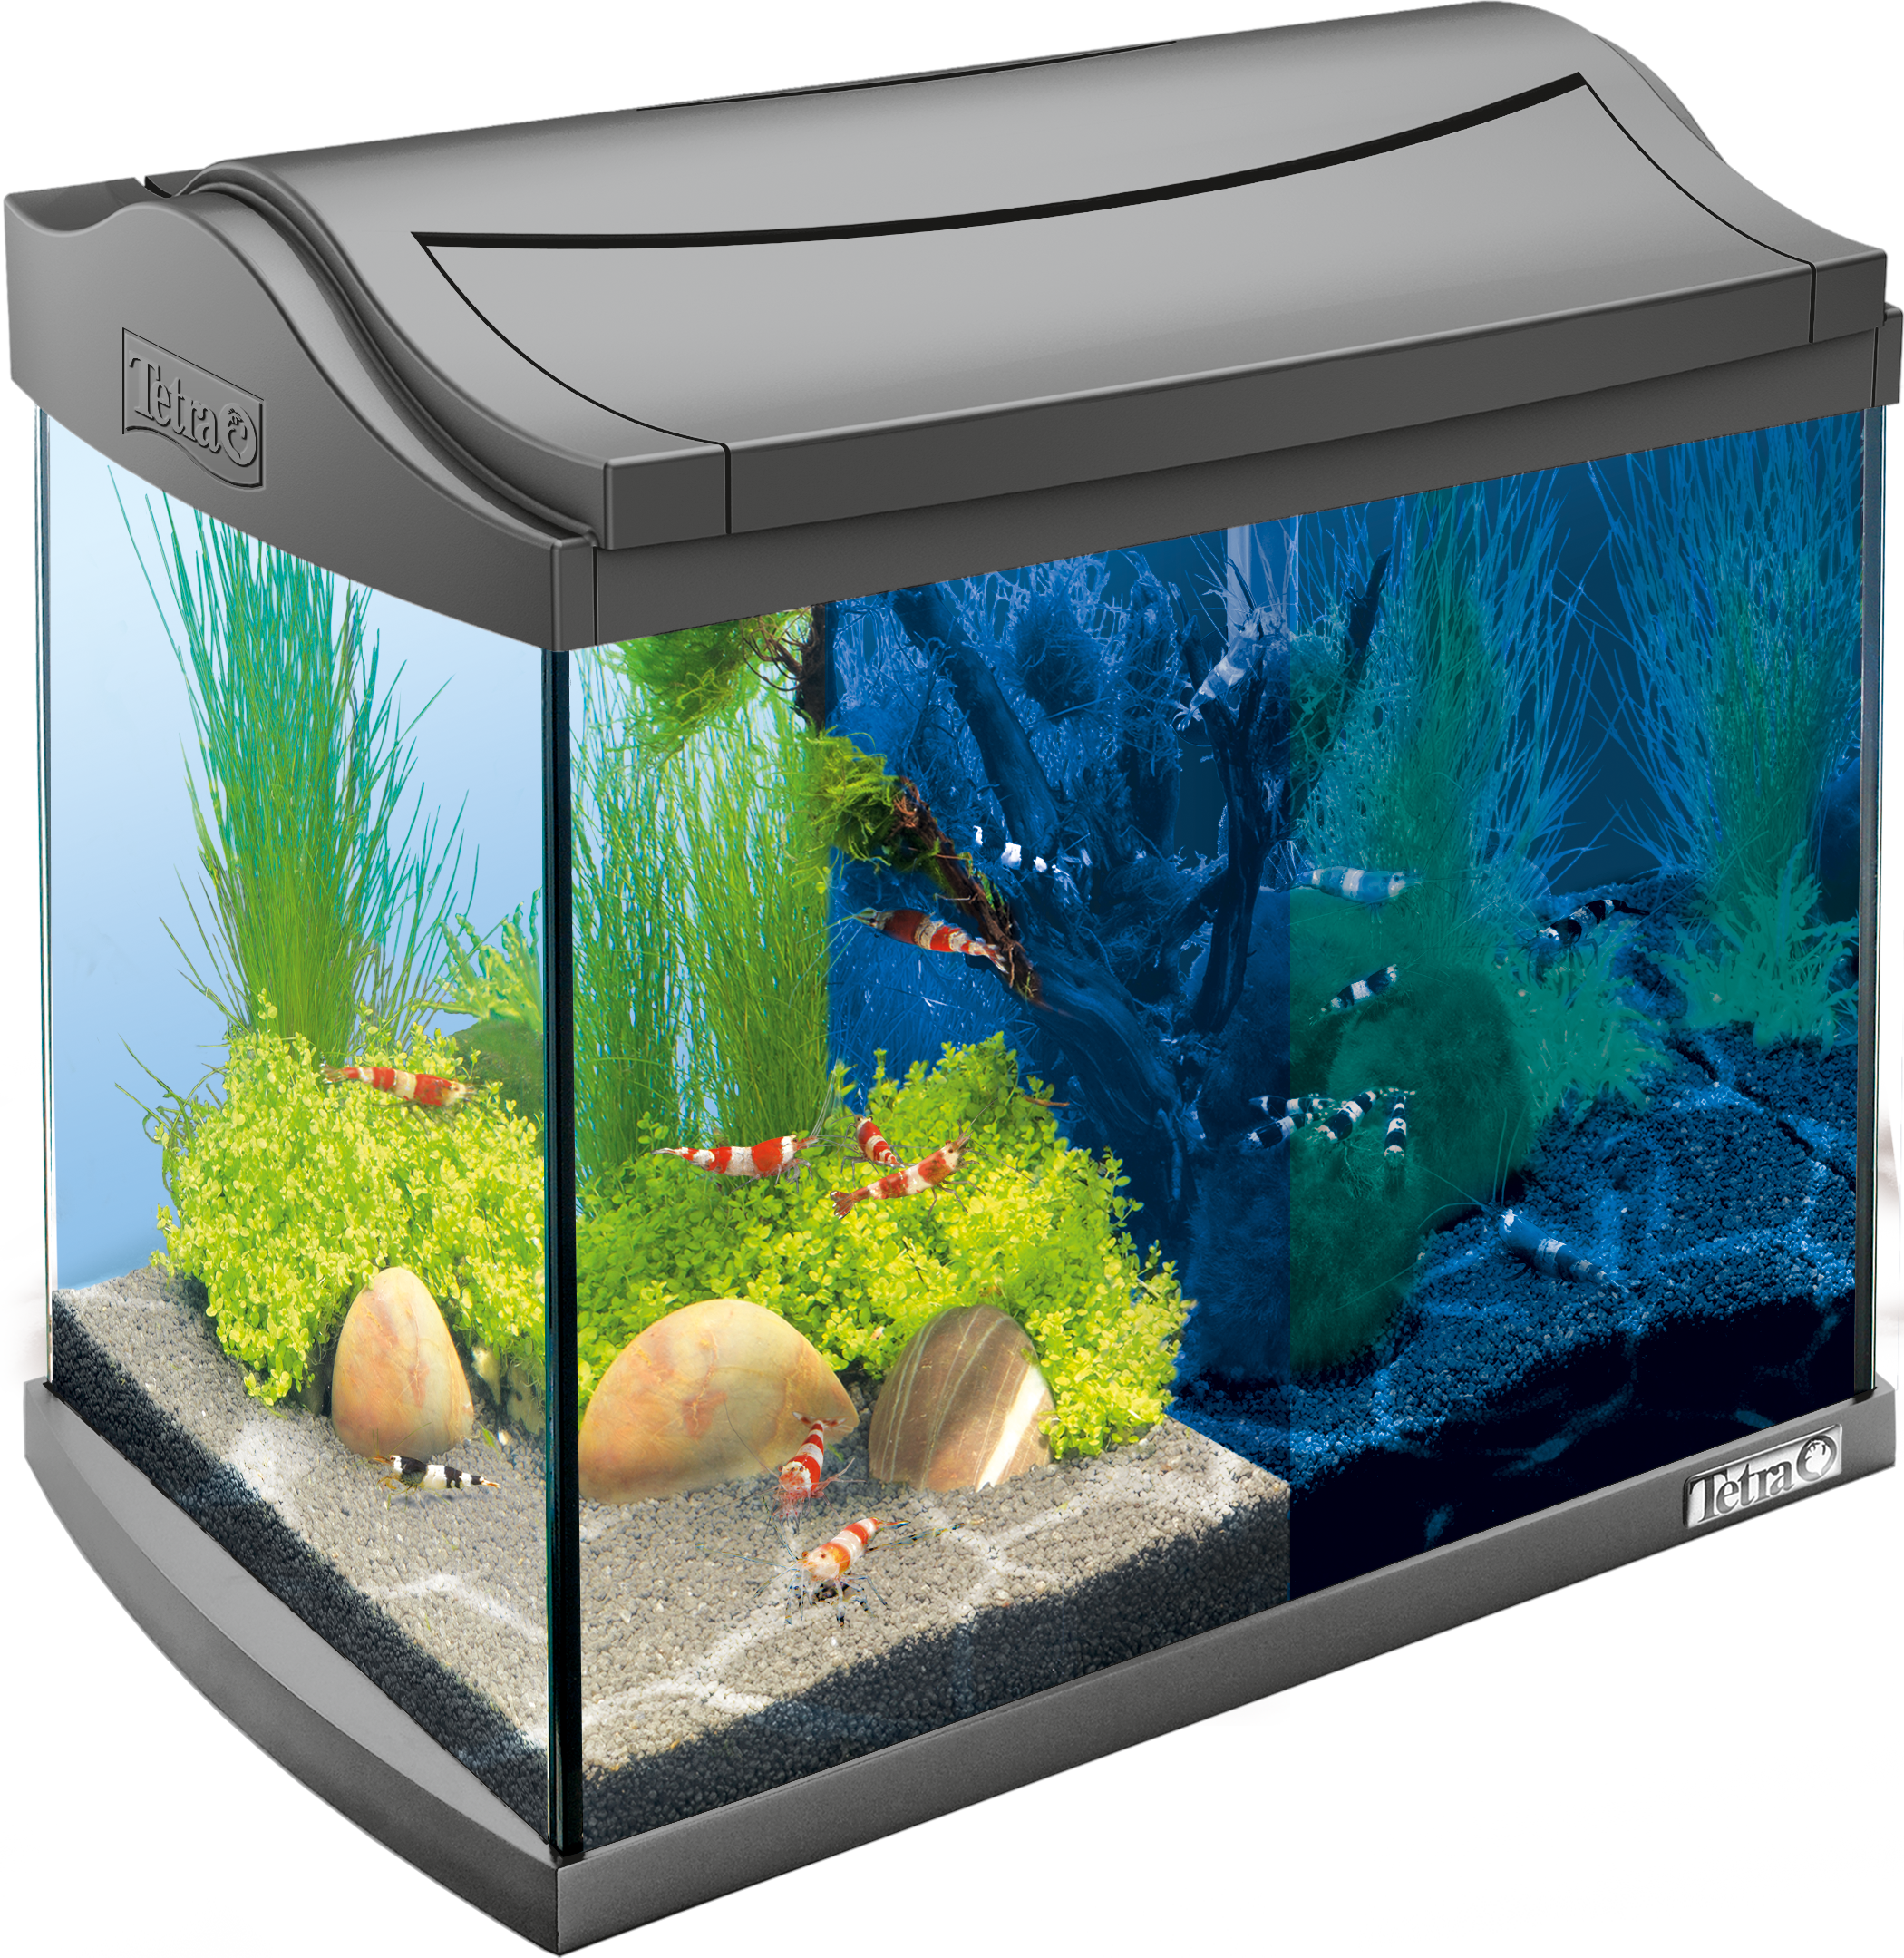 20l tetra aquaart led aquarium shrimps for Tetra fish tank